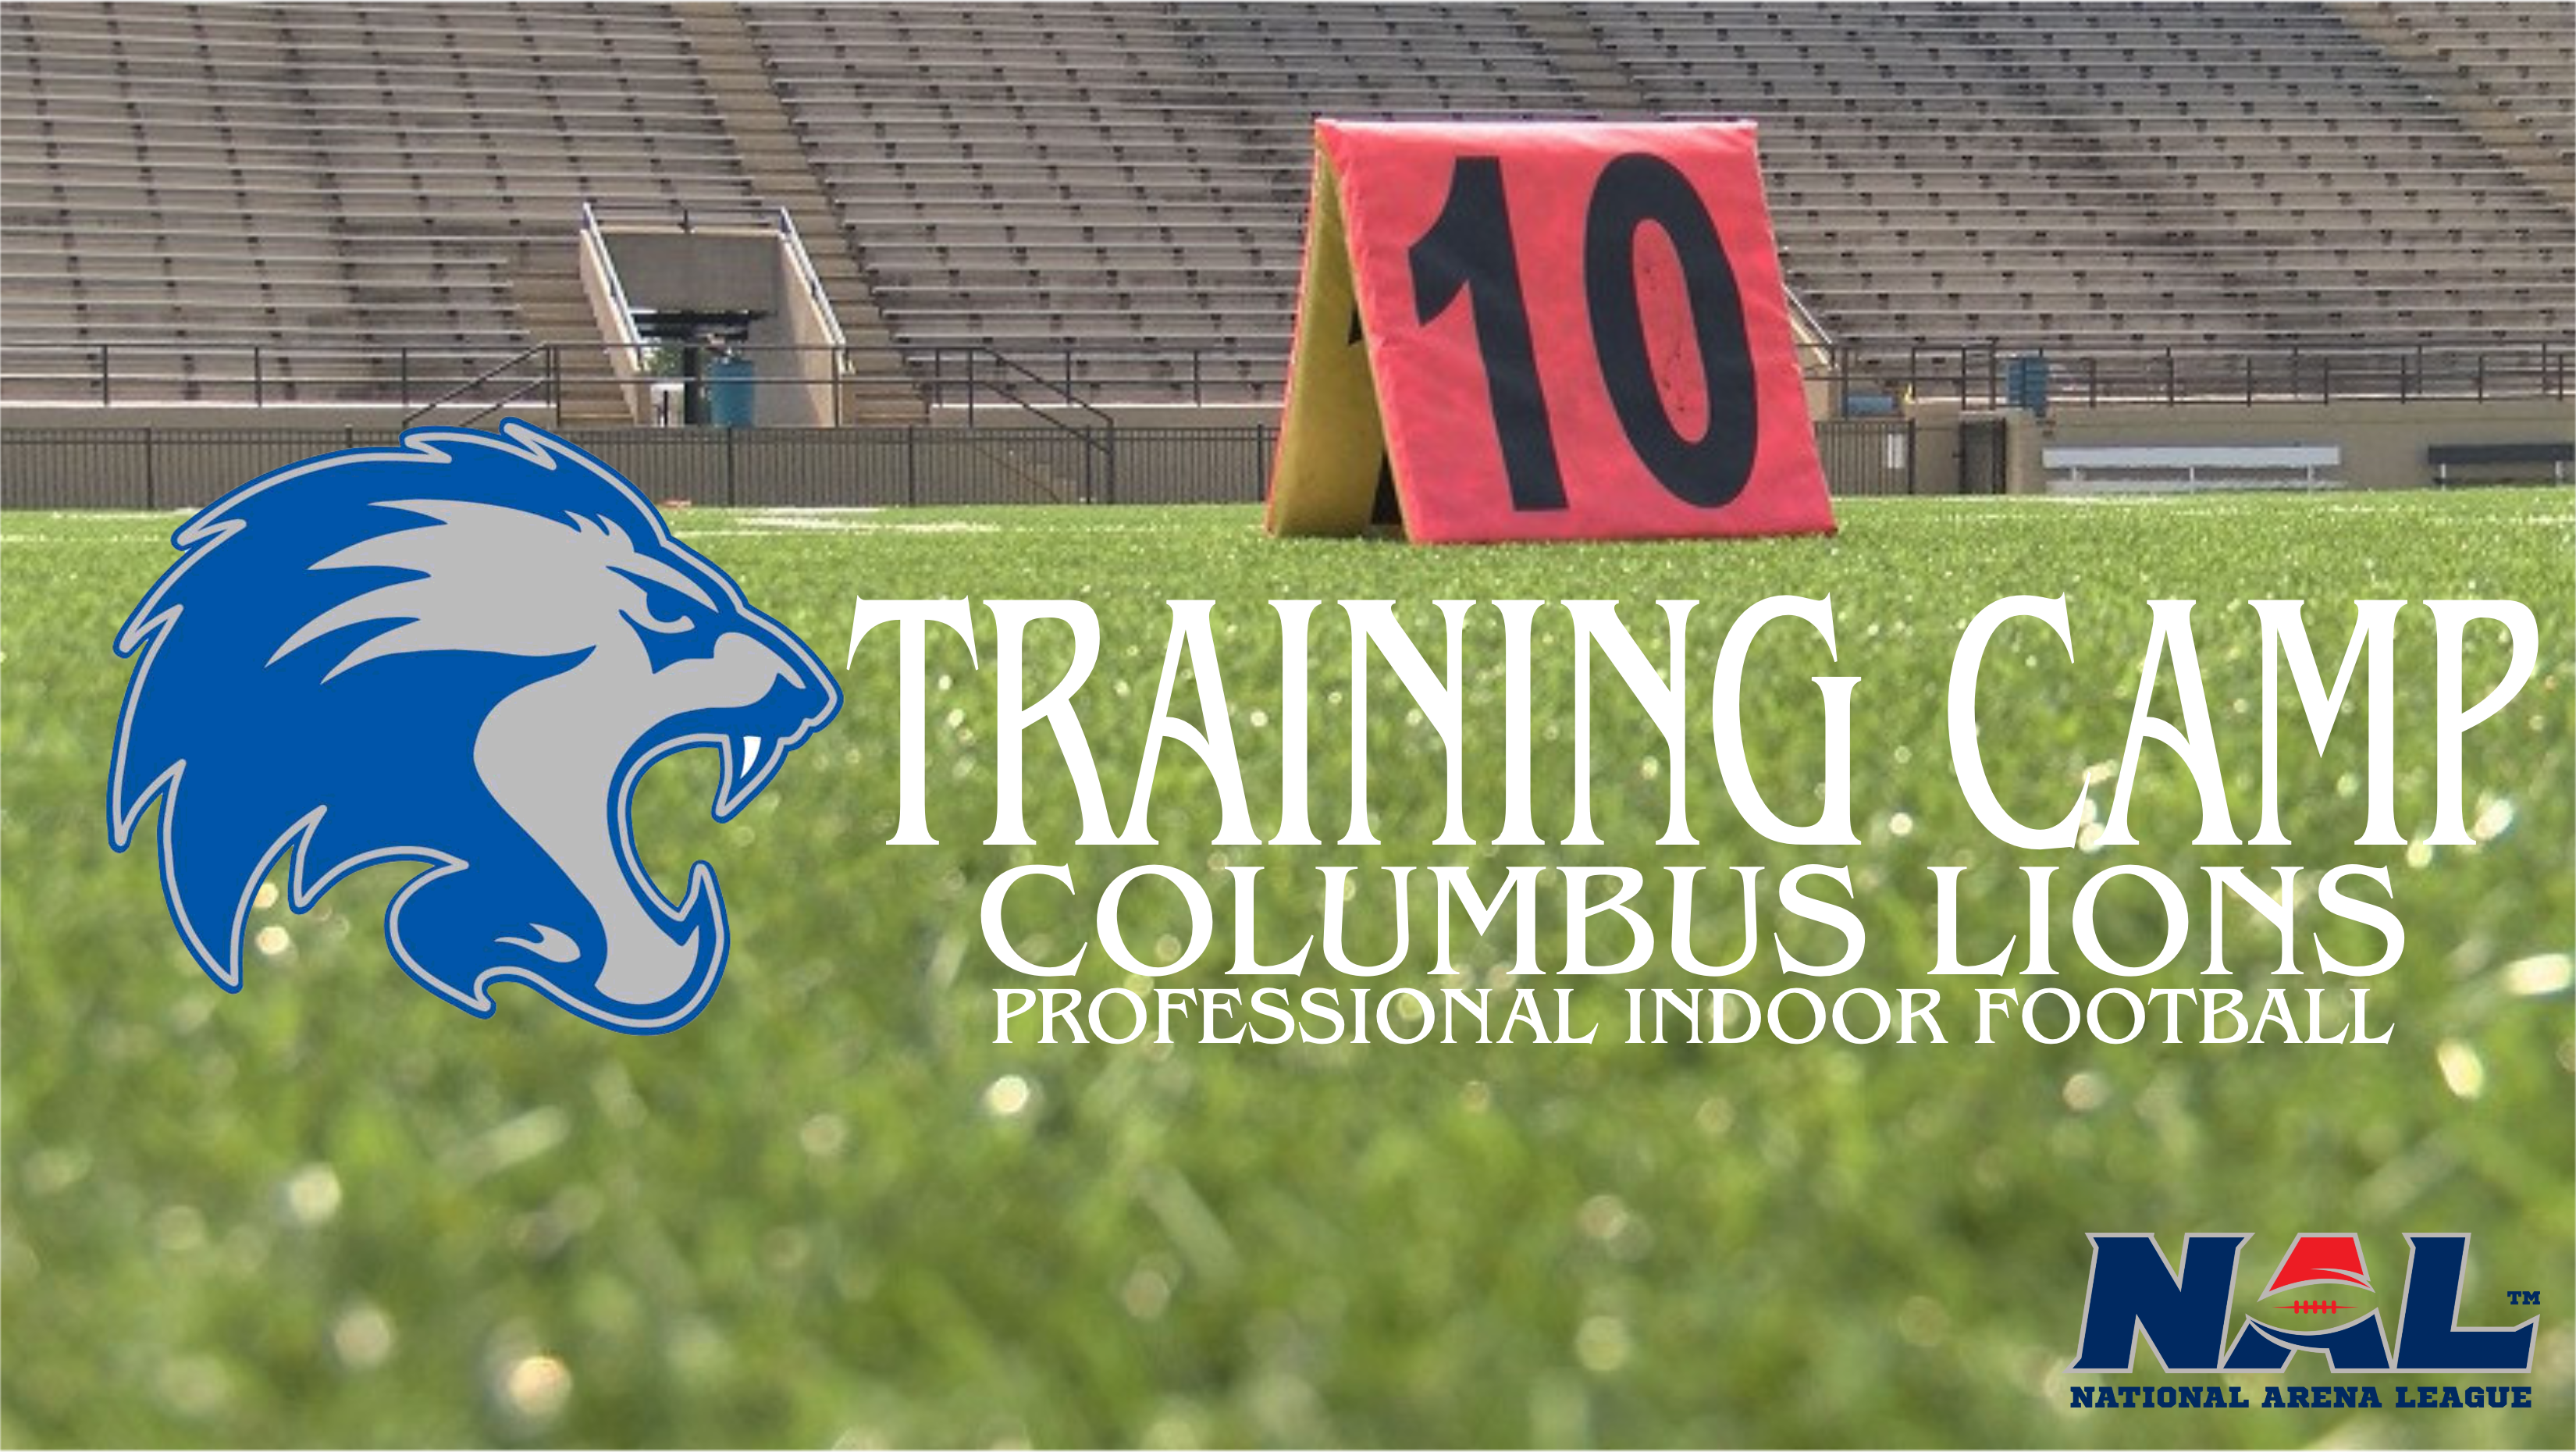 The Lions have announced the complete 2020 training camp schedule.